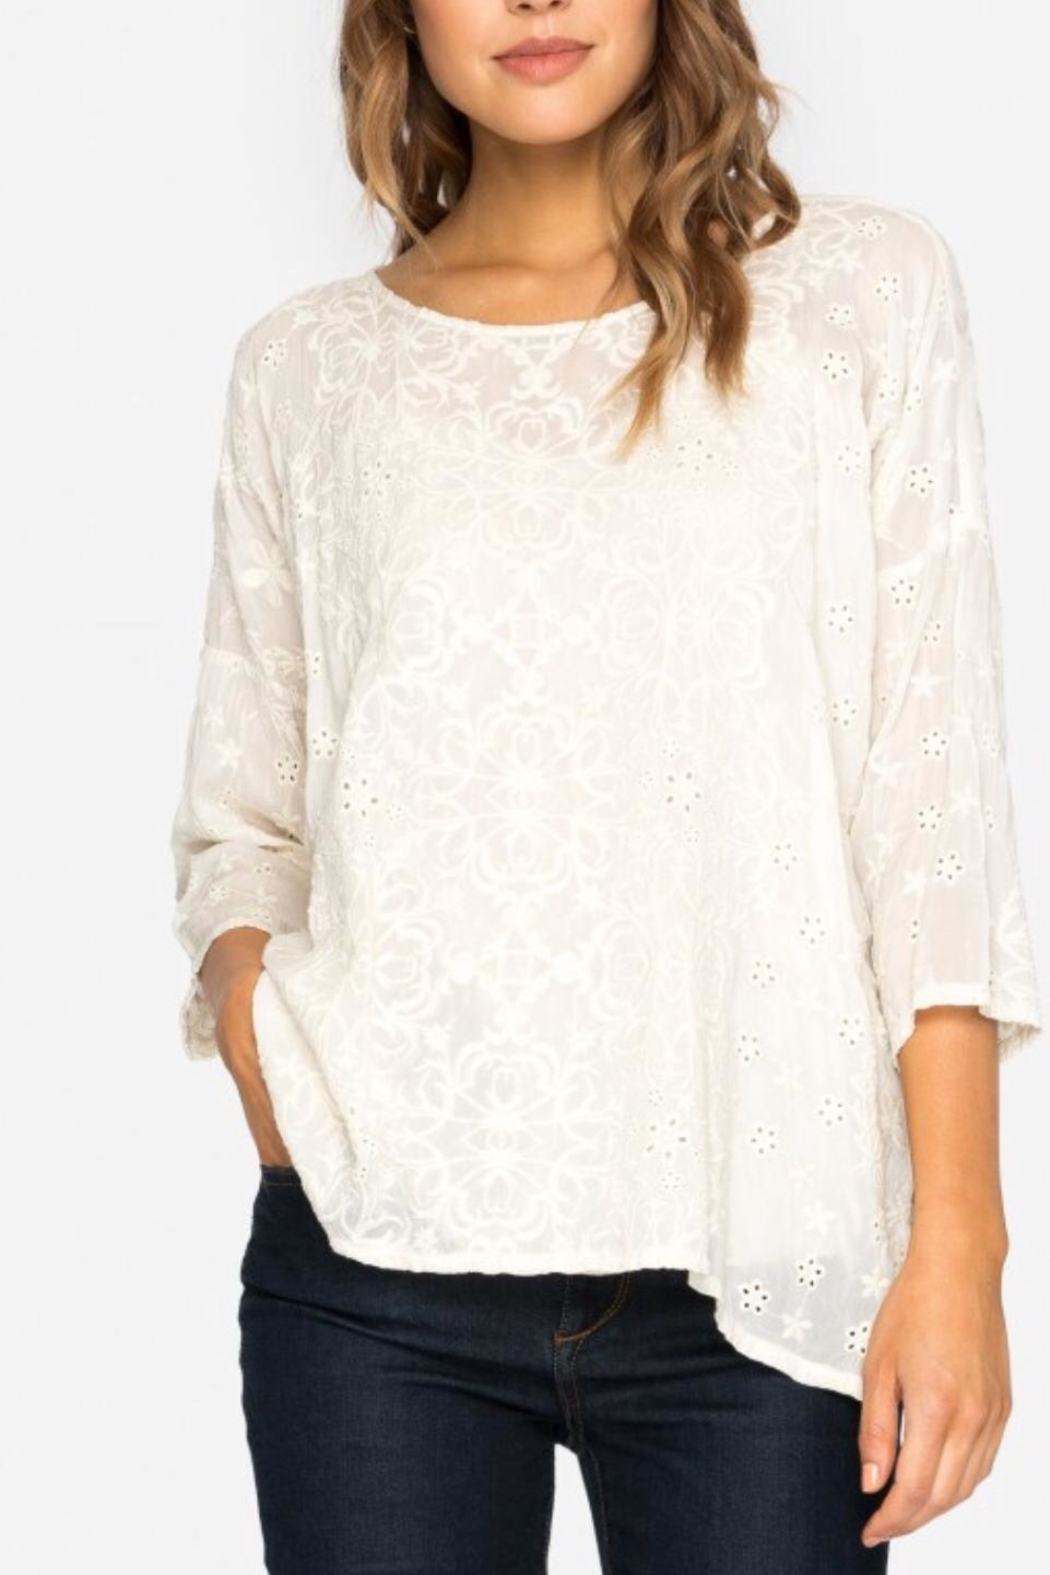 Johnny Was Jossy Embroiderd Blouse - Main Image